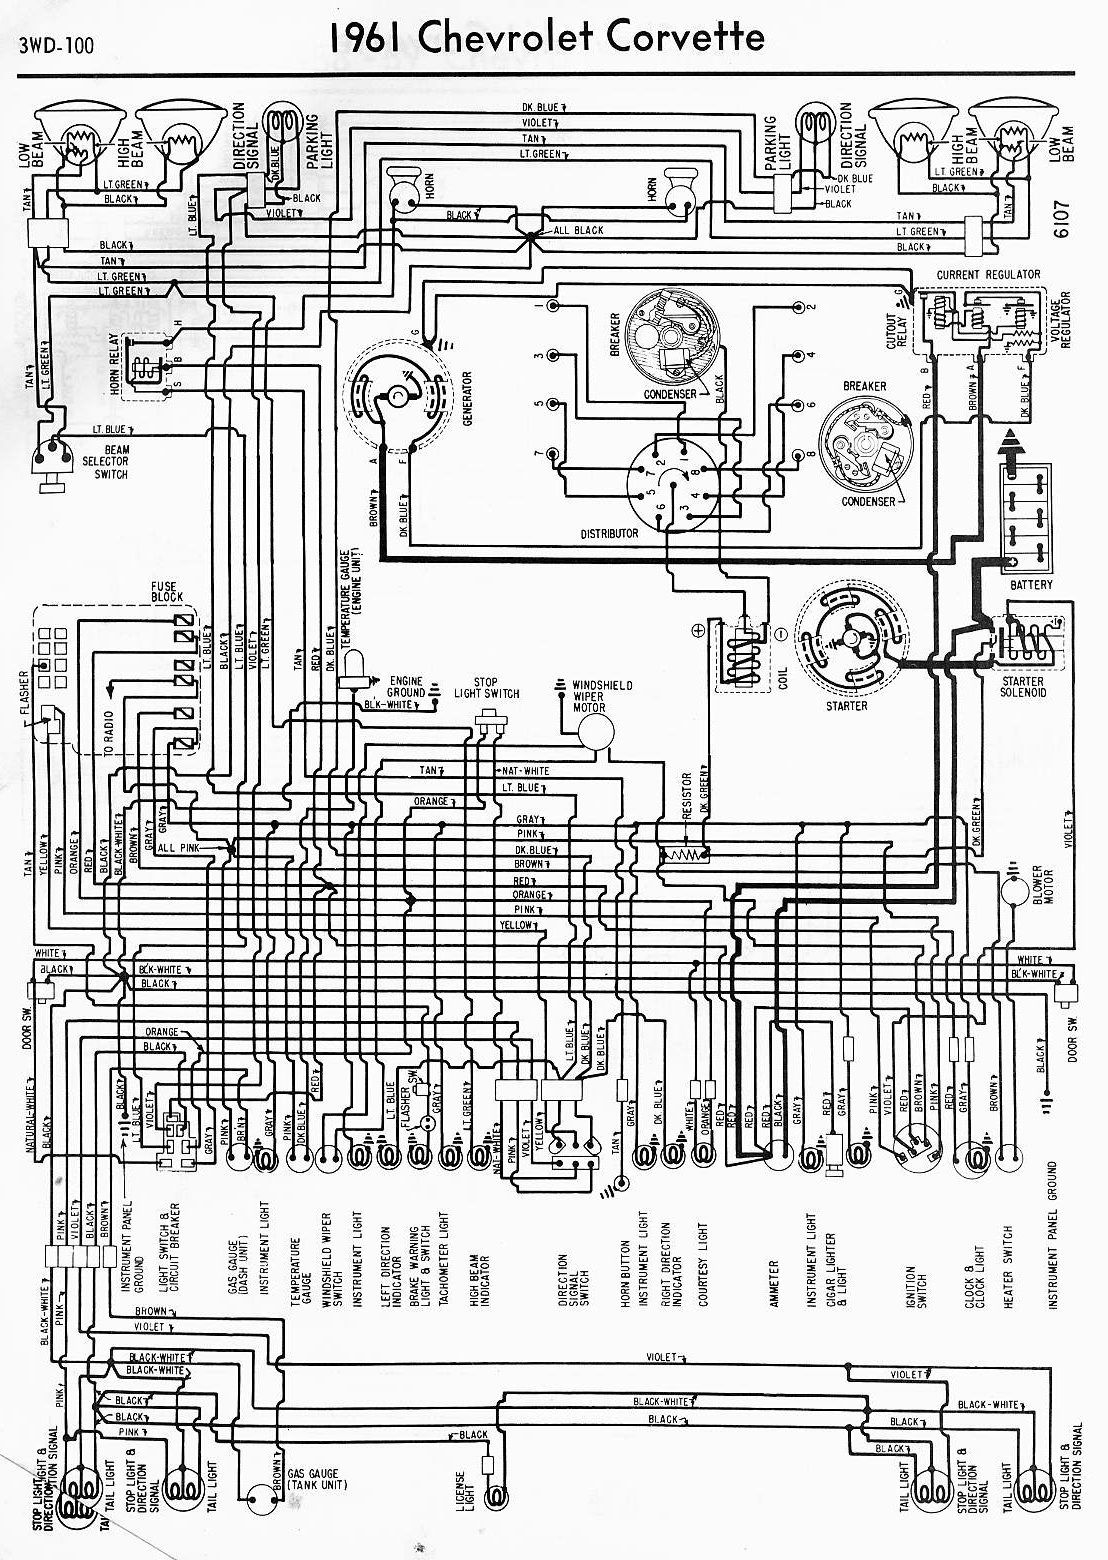 Pin By Imran Hasan On Automotive Repair Diagram Design Diagram Trailer Wiring Diagram